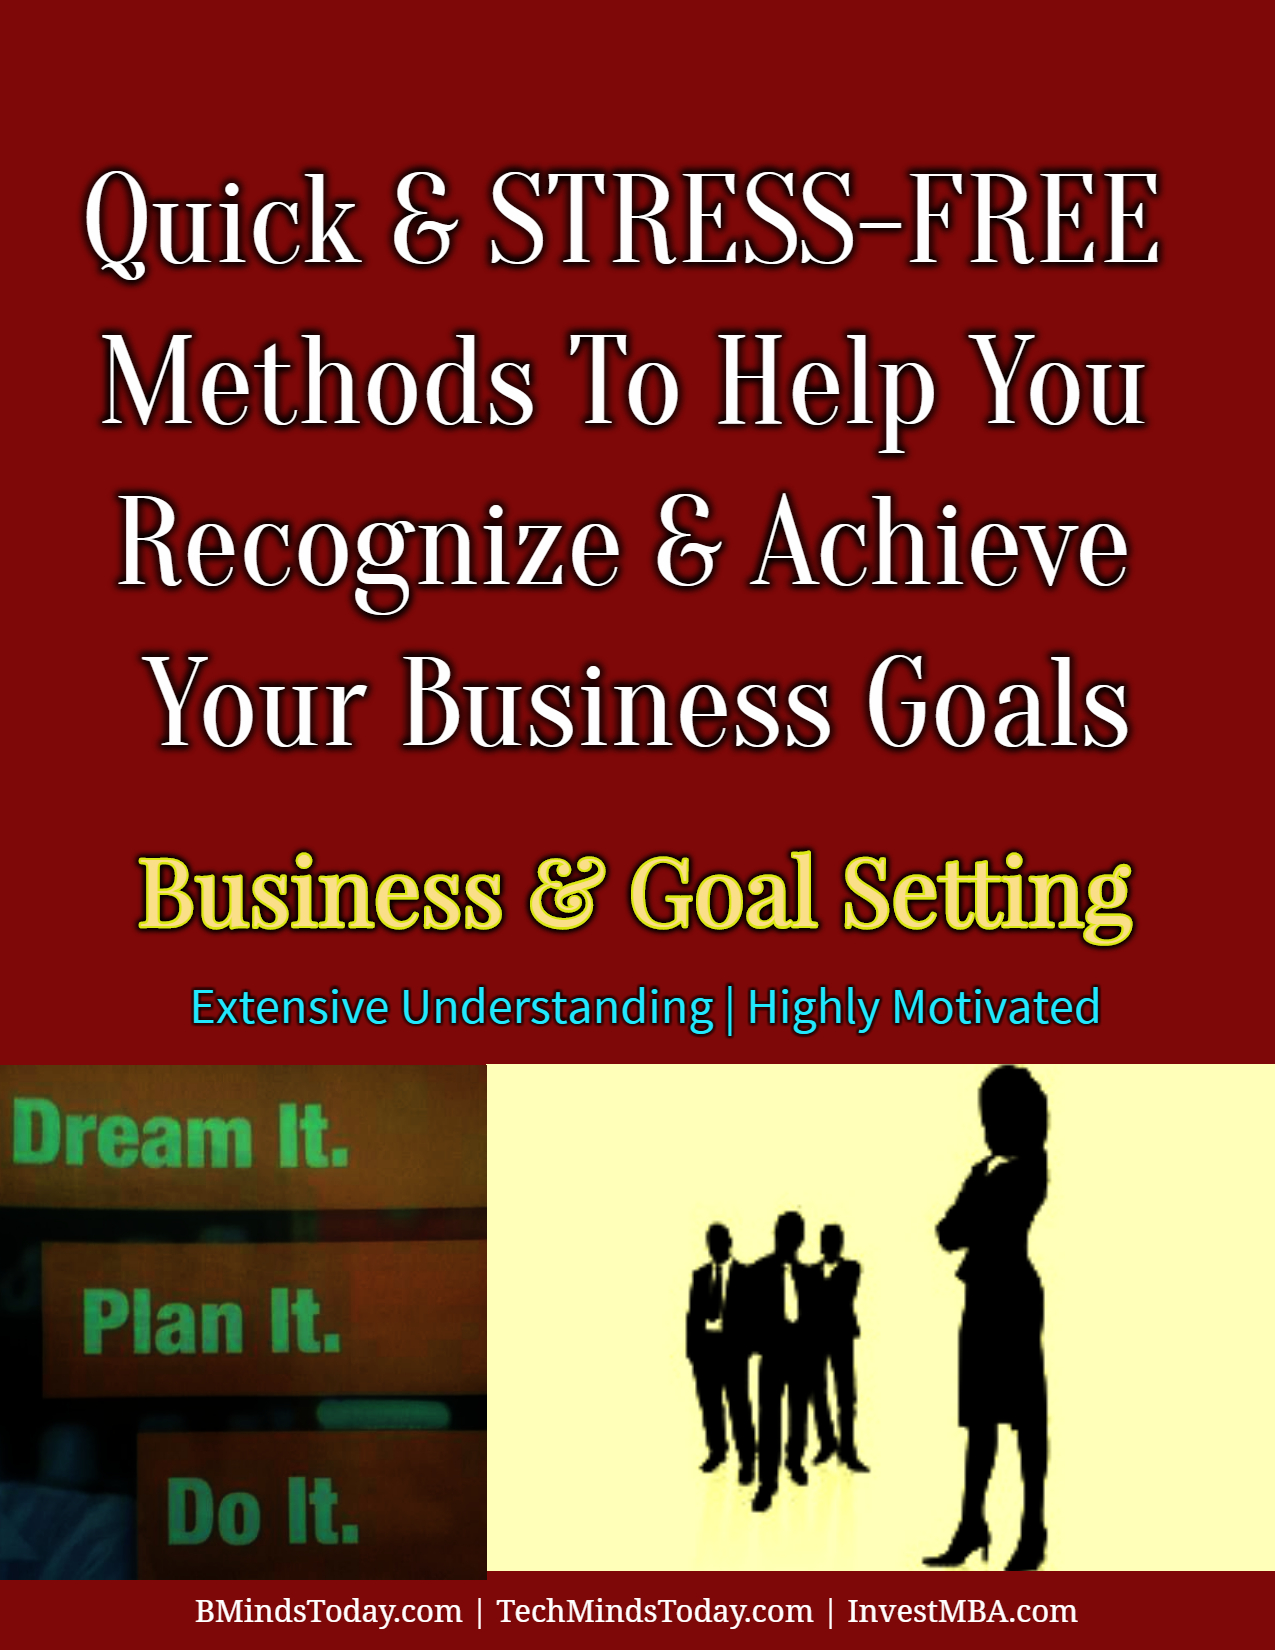 Quick And STRESS-FREE Methods To Help You Recognize And Achieve Your TRUE Goals In Business goals Quick And STRESS-FREE Methods To Help You Recognize & Achieve Your Business Goals Quick And STRESS FREE Methods To Help You Recognize And Achieve Your Goals In Business